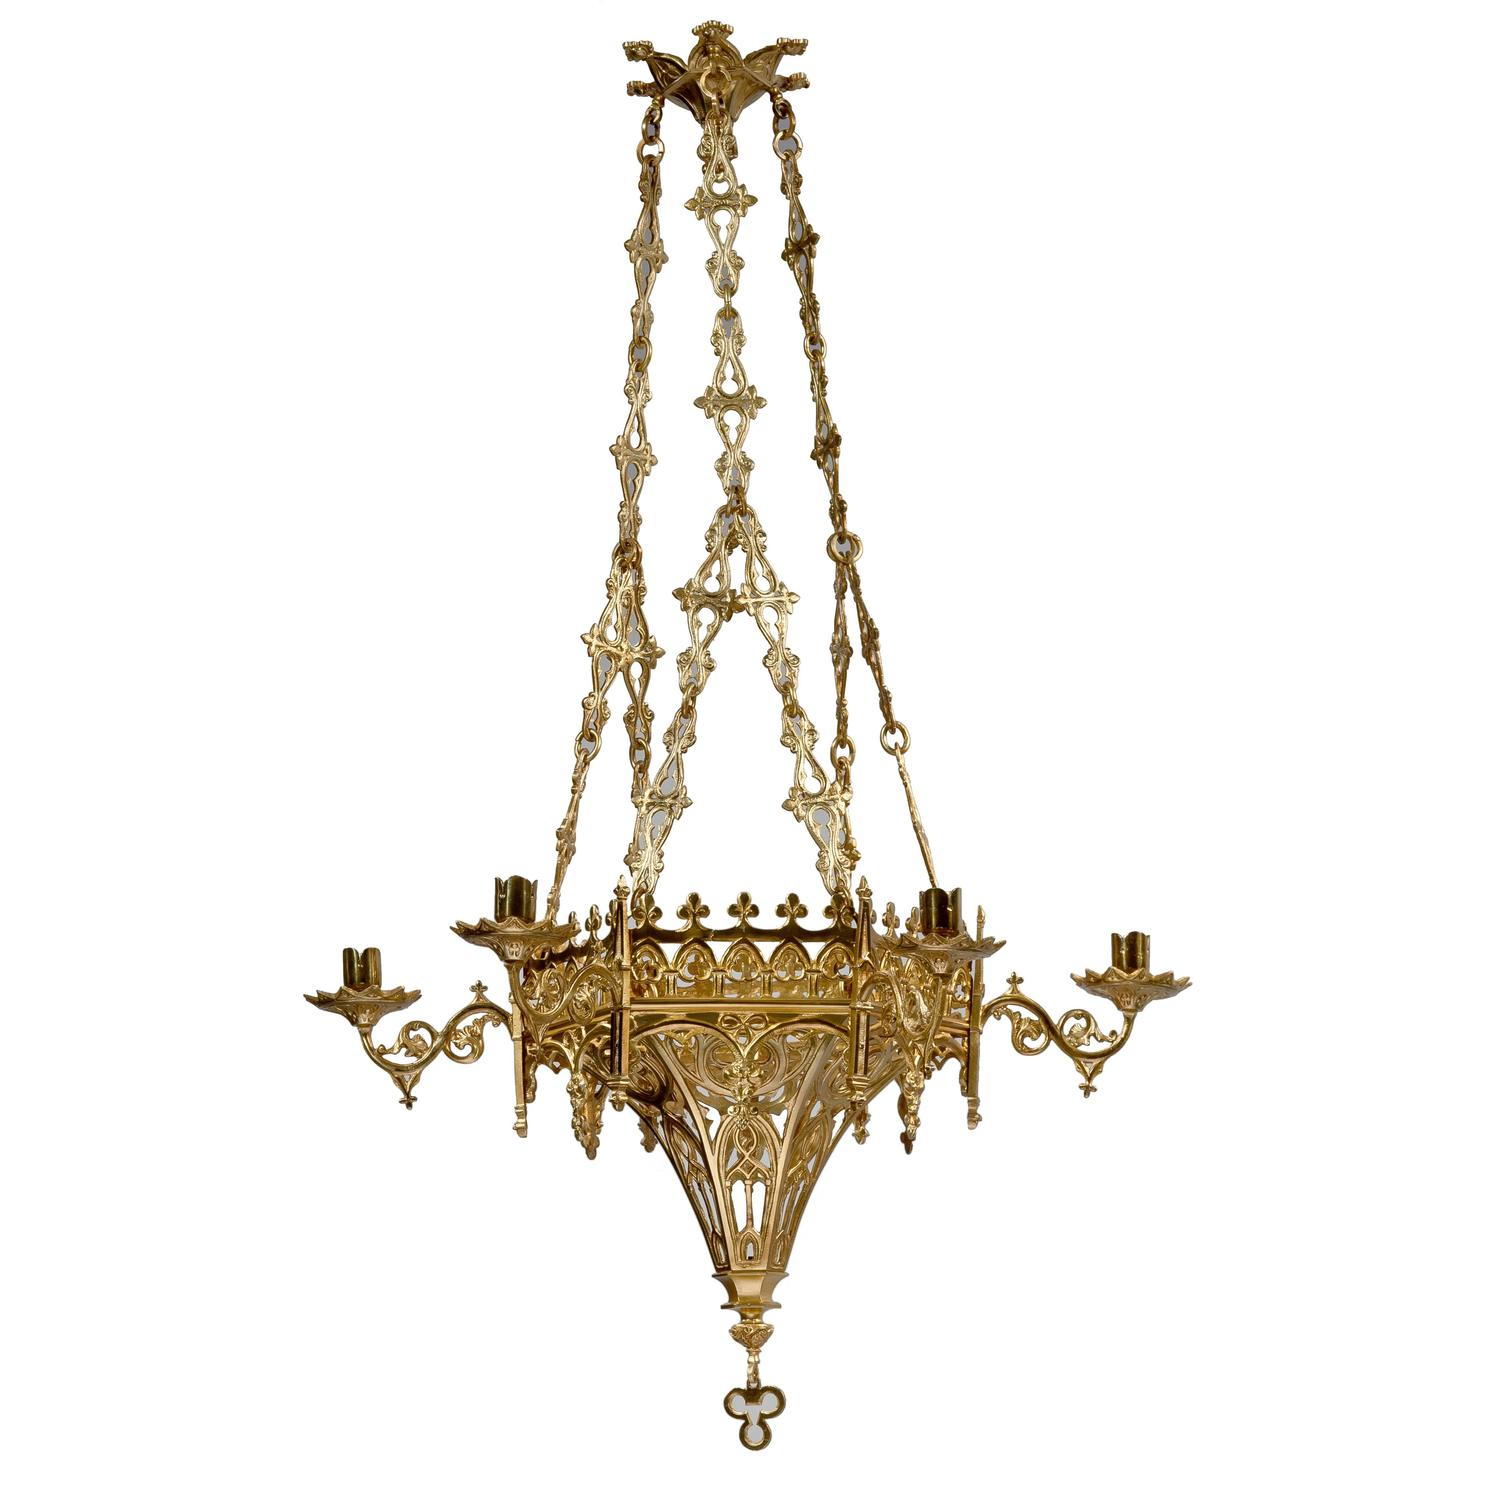 Gothic Revival Hexagonal 6 Light Chandelier For Sale At